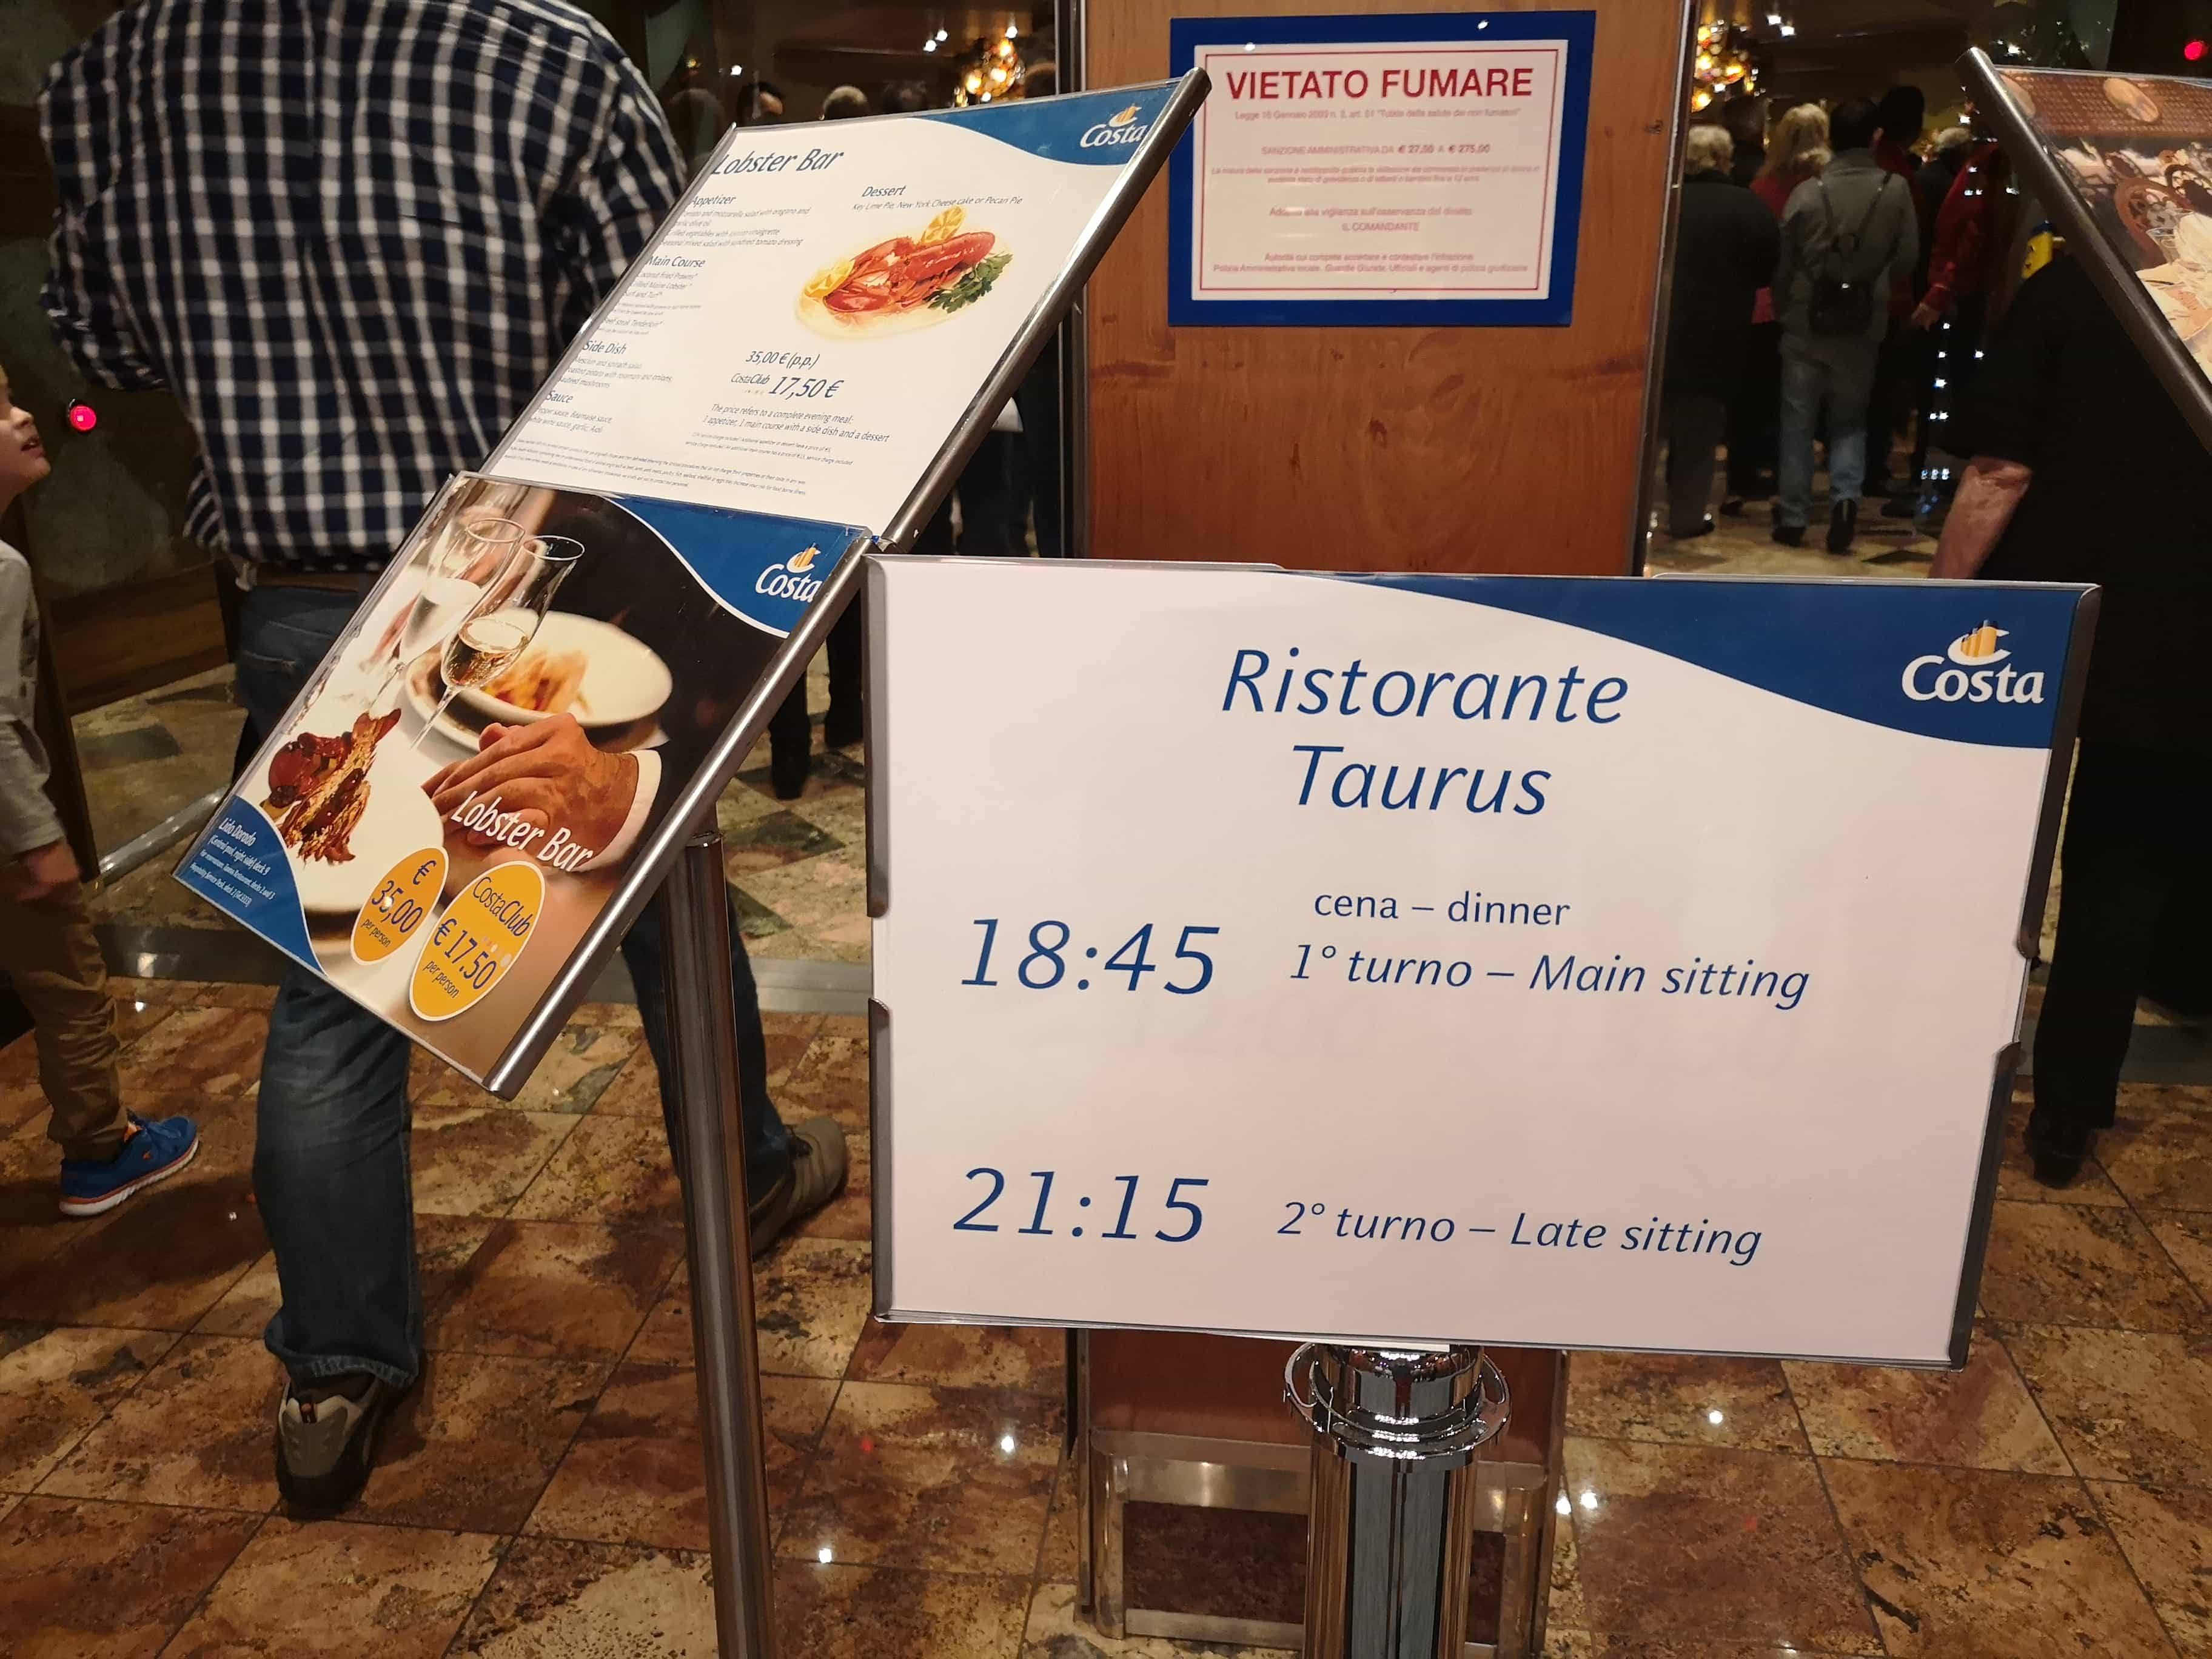 Costa Cruises Dining Times Sign Outside Restaurant 18:45 and 21:15